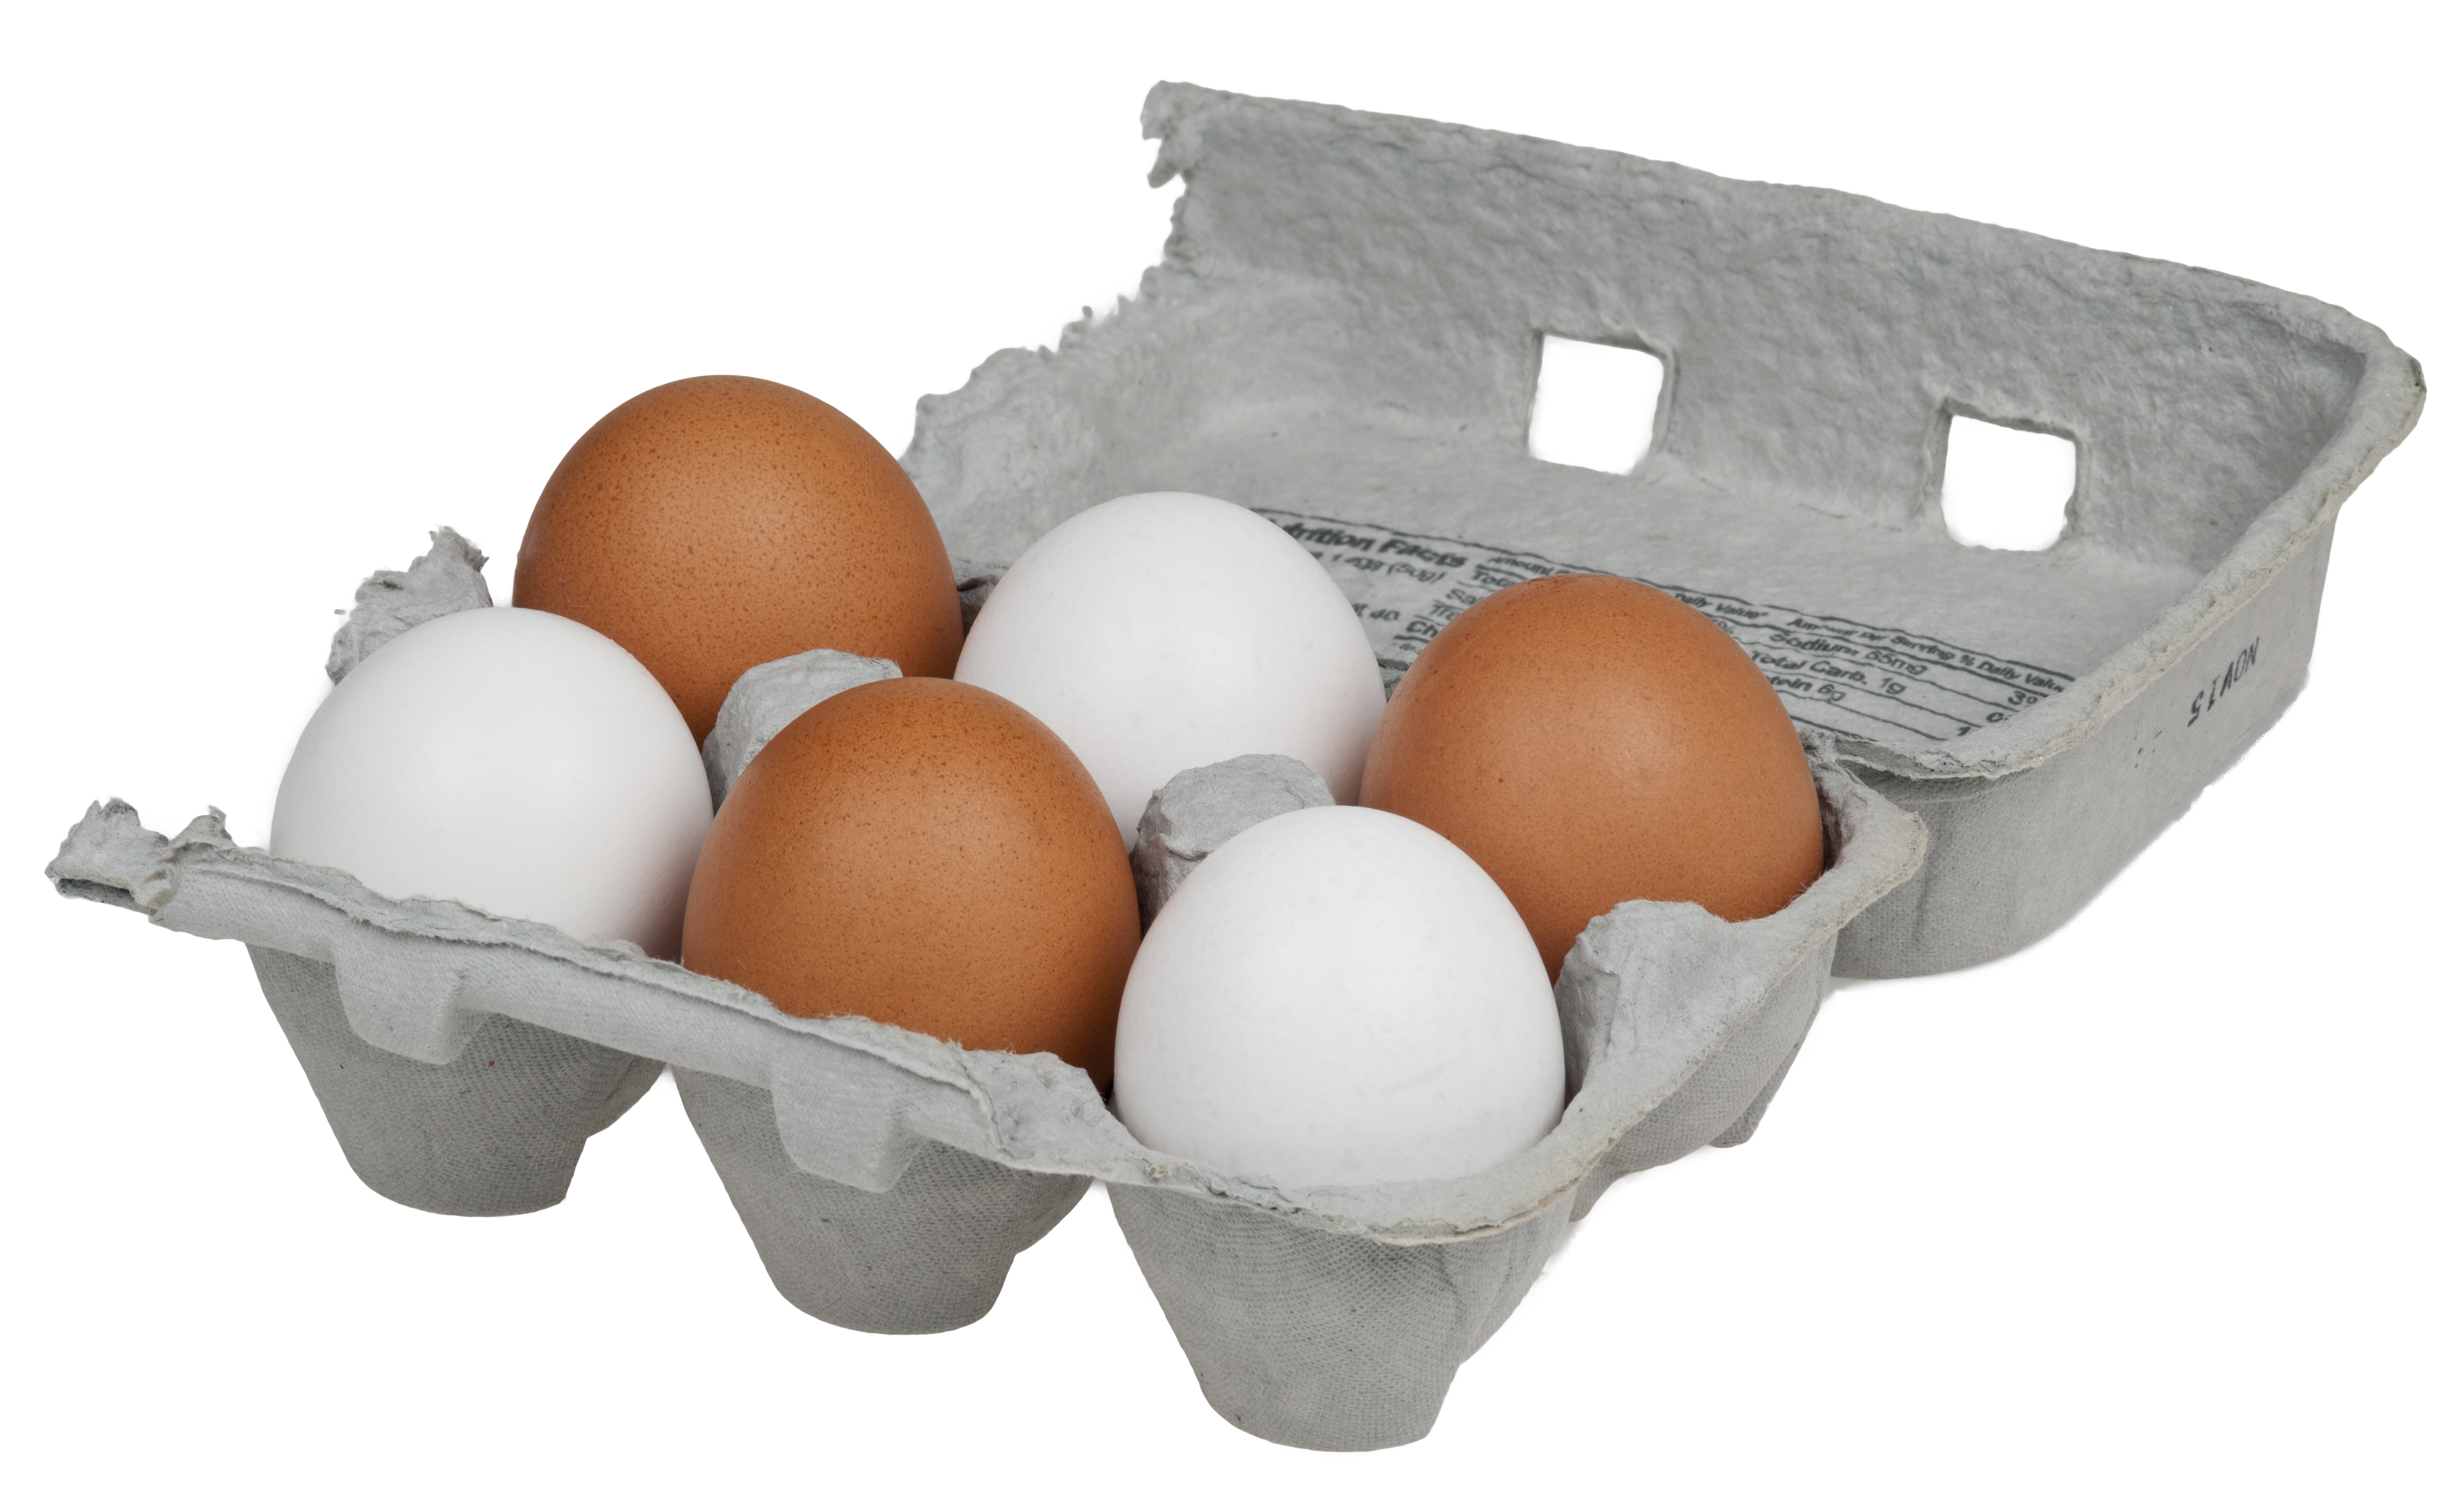 Egg Packaging Market Wind Turbine  Market in 360MarketUpdates.com